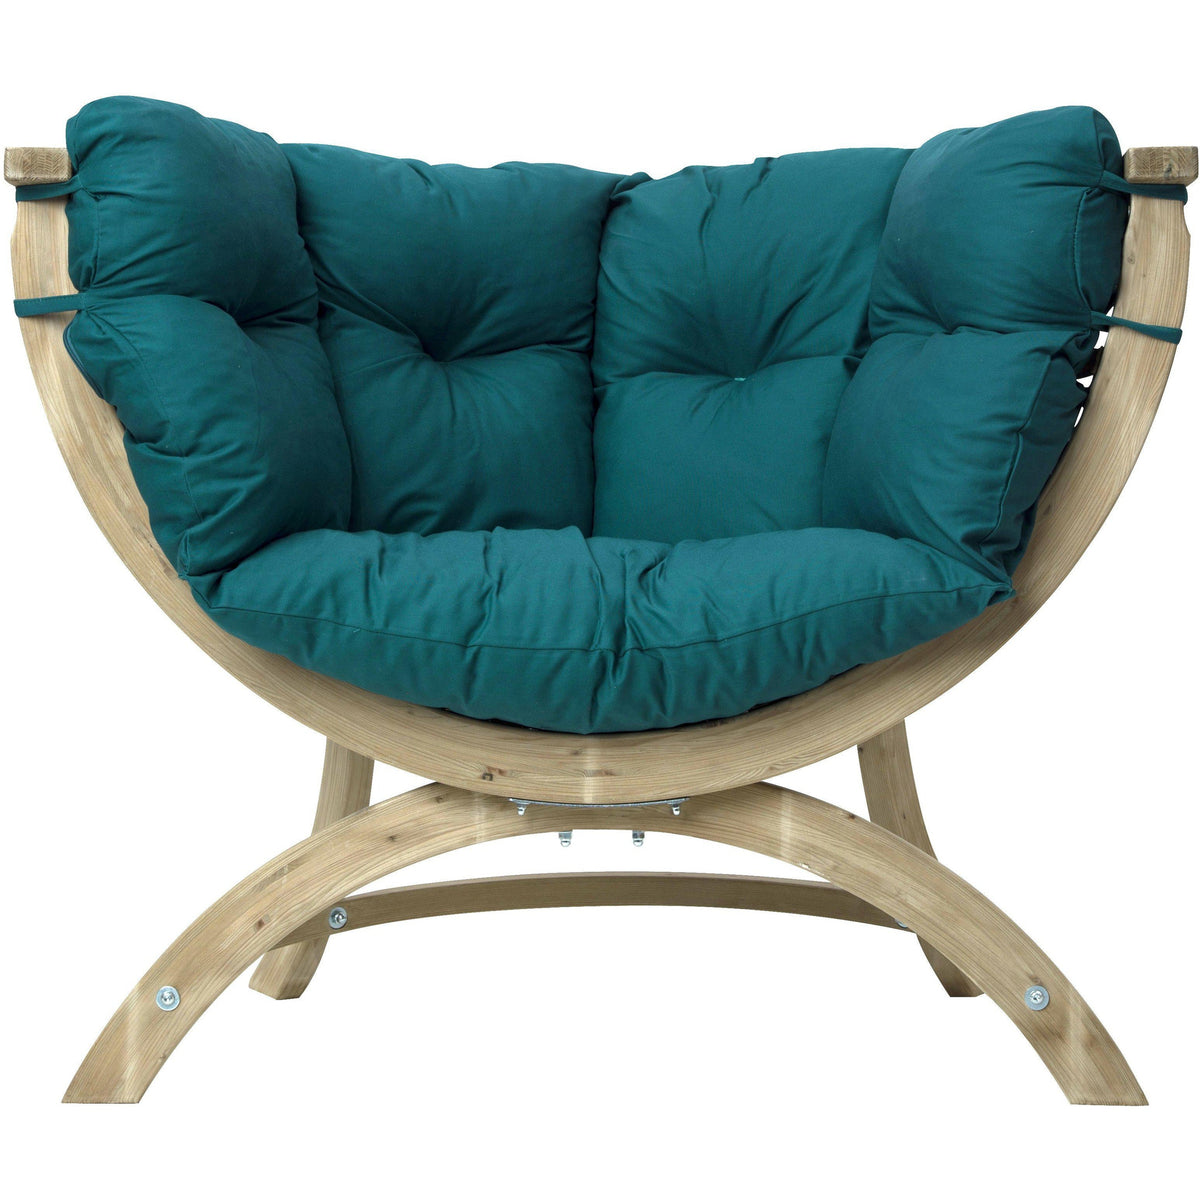 Siena UNO Chair, Green, from Byer of Maine